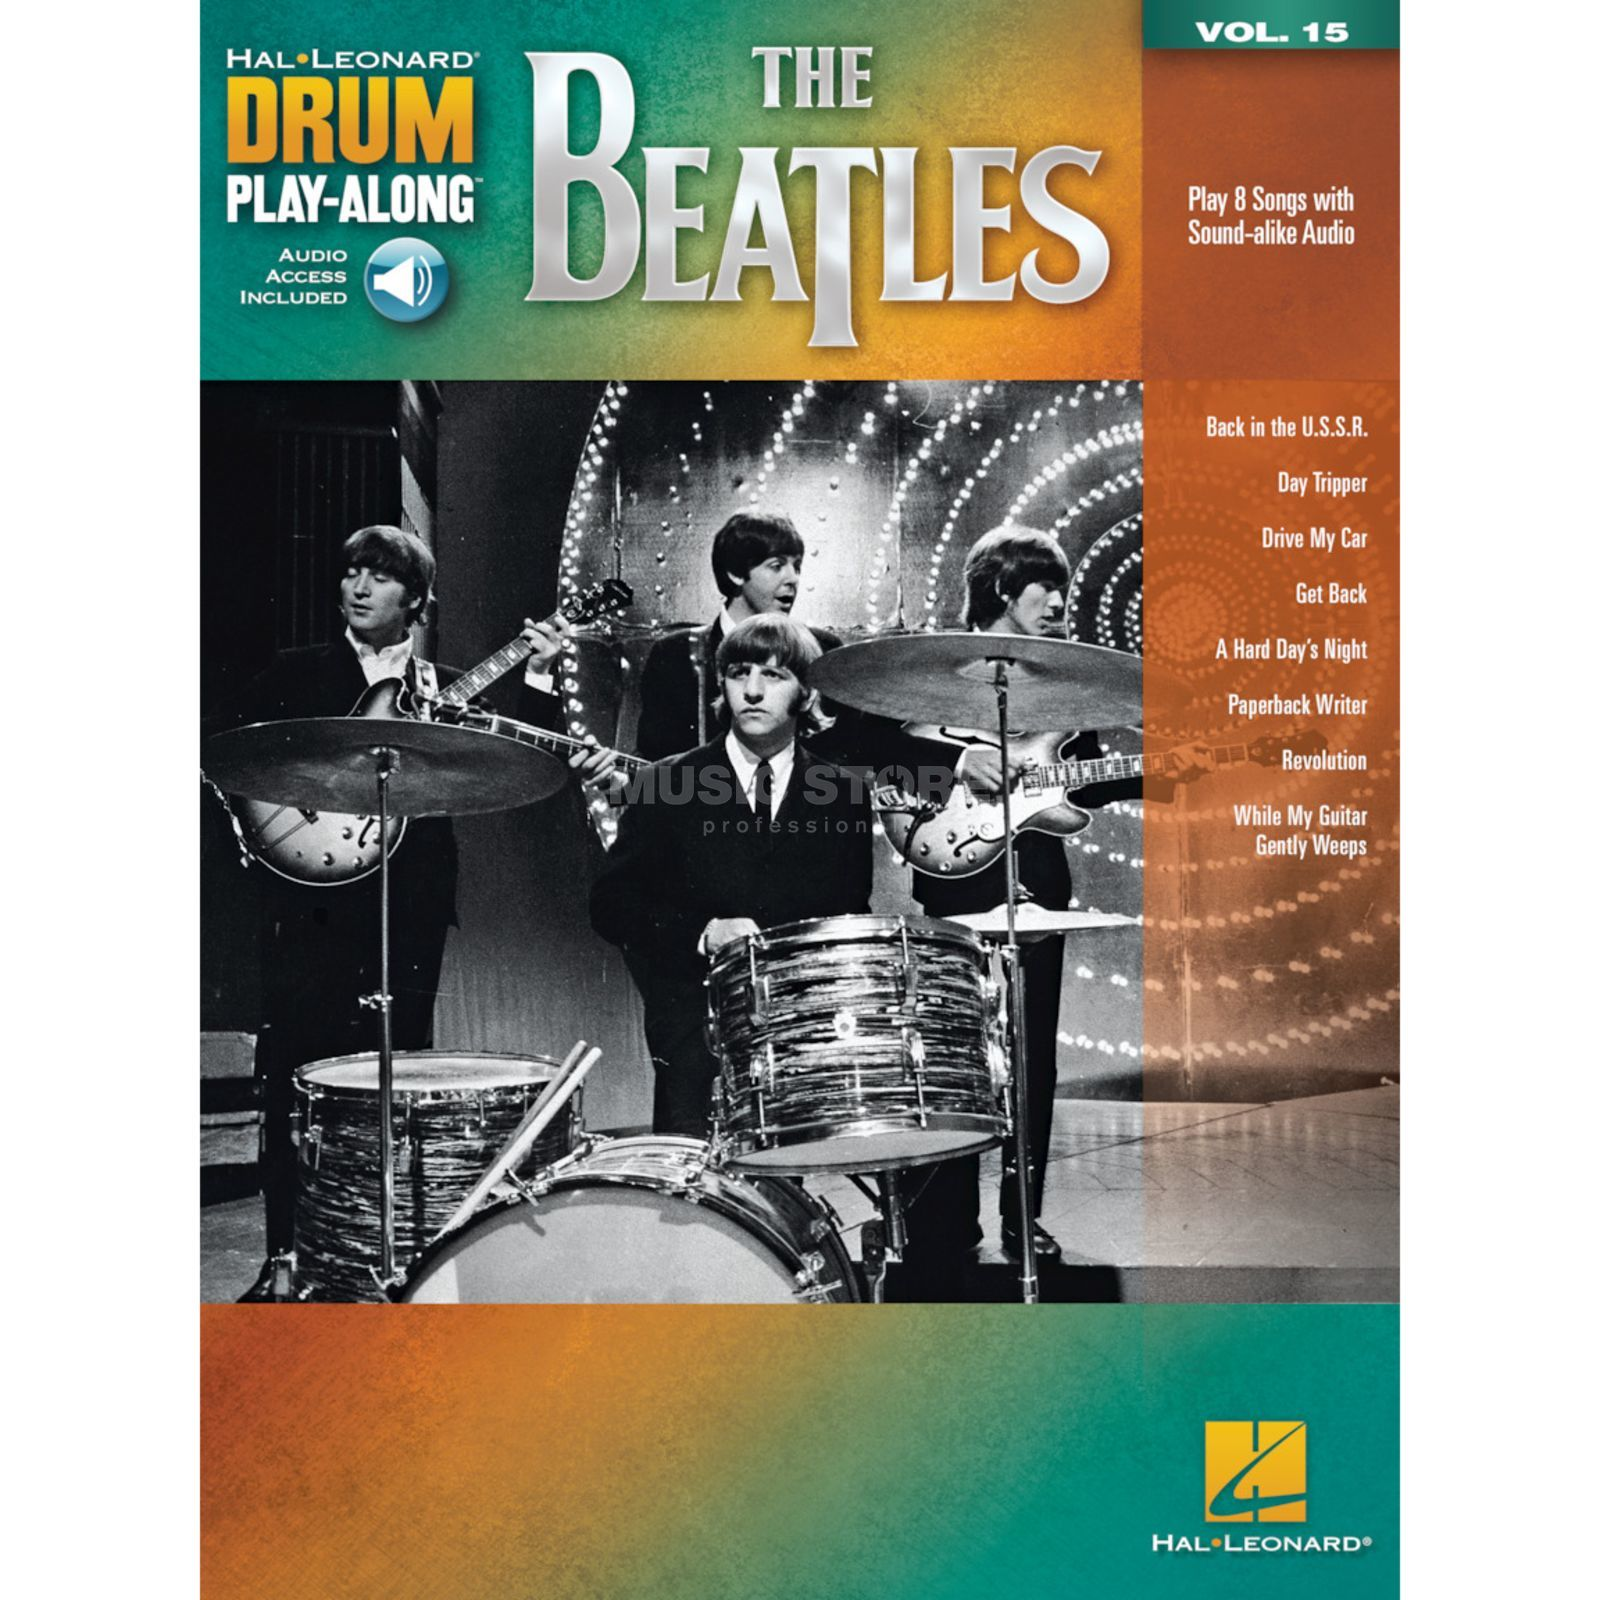 Hal Leonard Drum Play-Along Volume 15: The Beatles Product Image